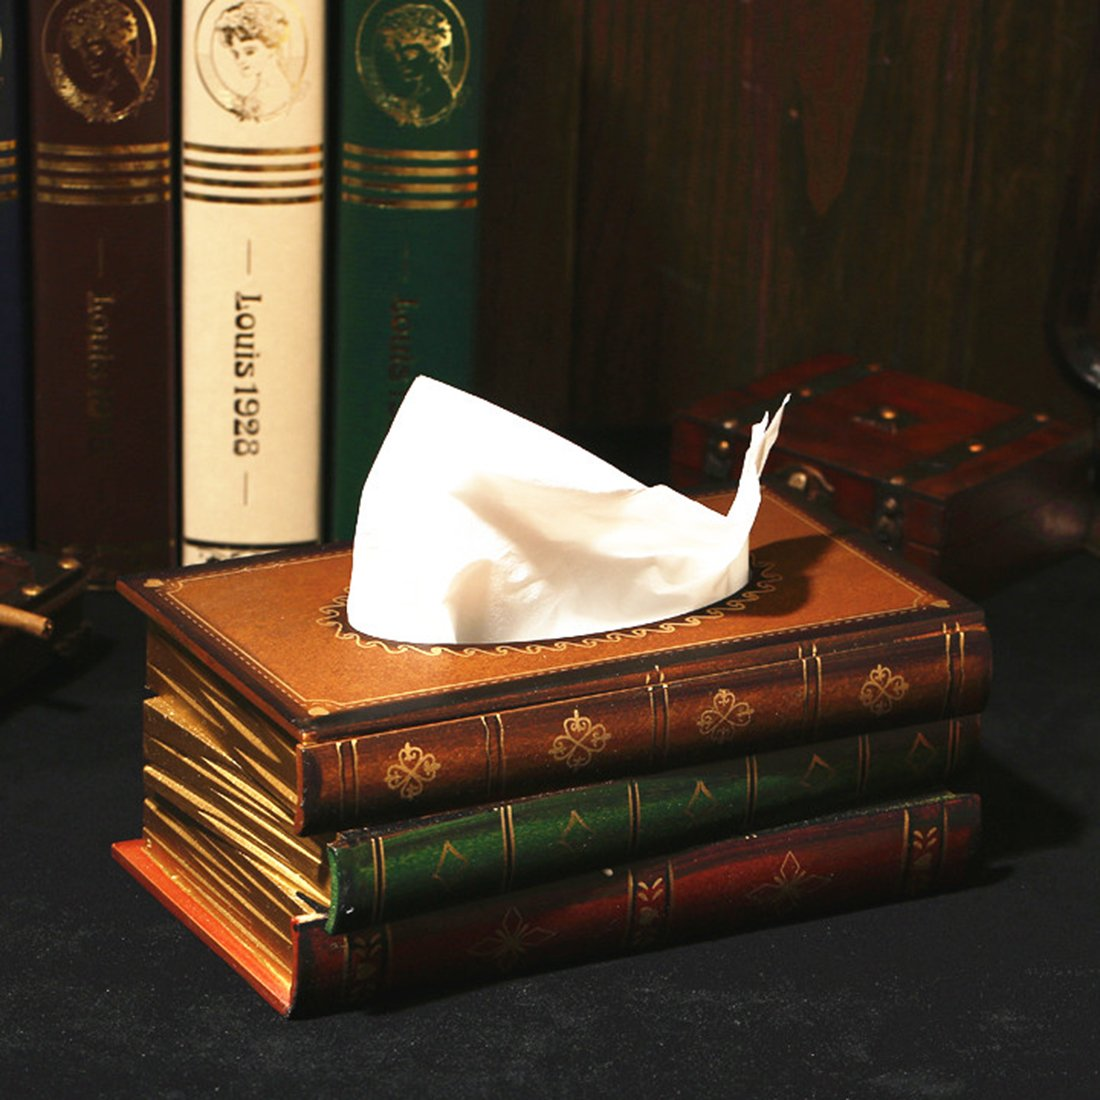 Tosnail Elegant Wooden Antique Book Tissue Holder Dispenser//Novelty Napkin Holder